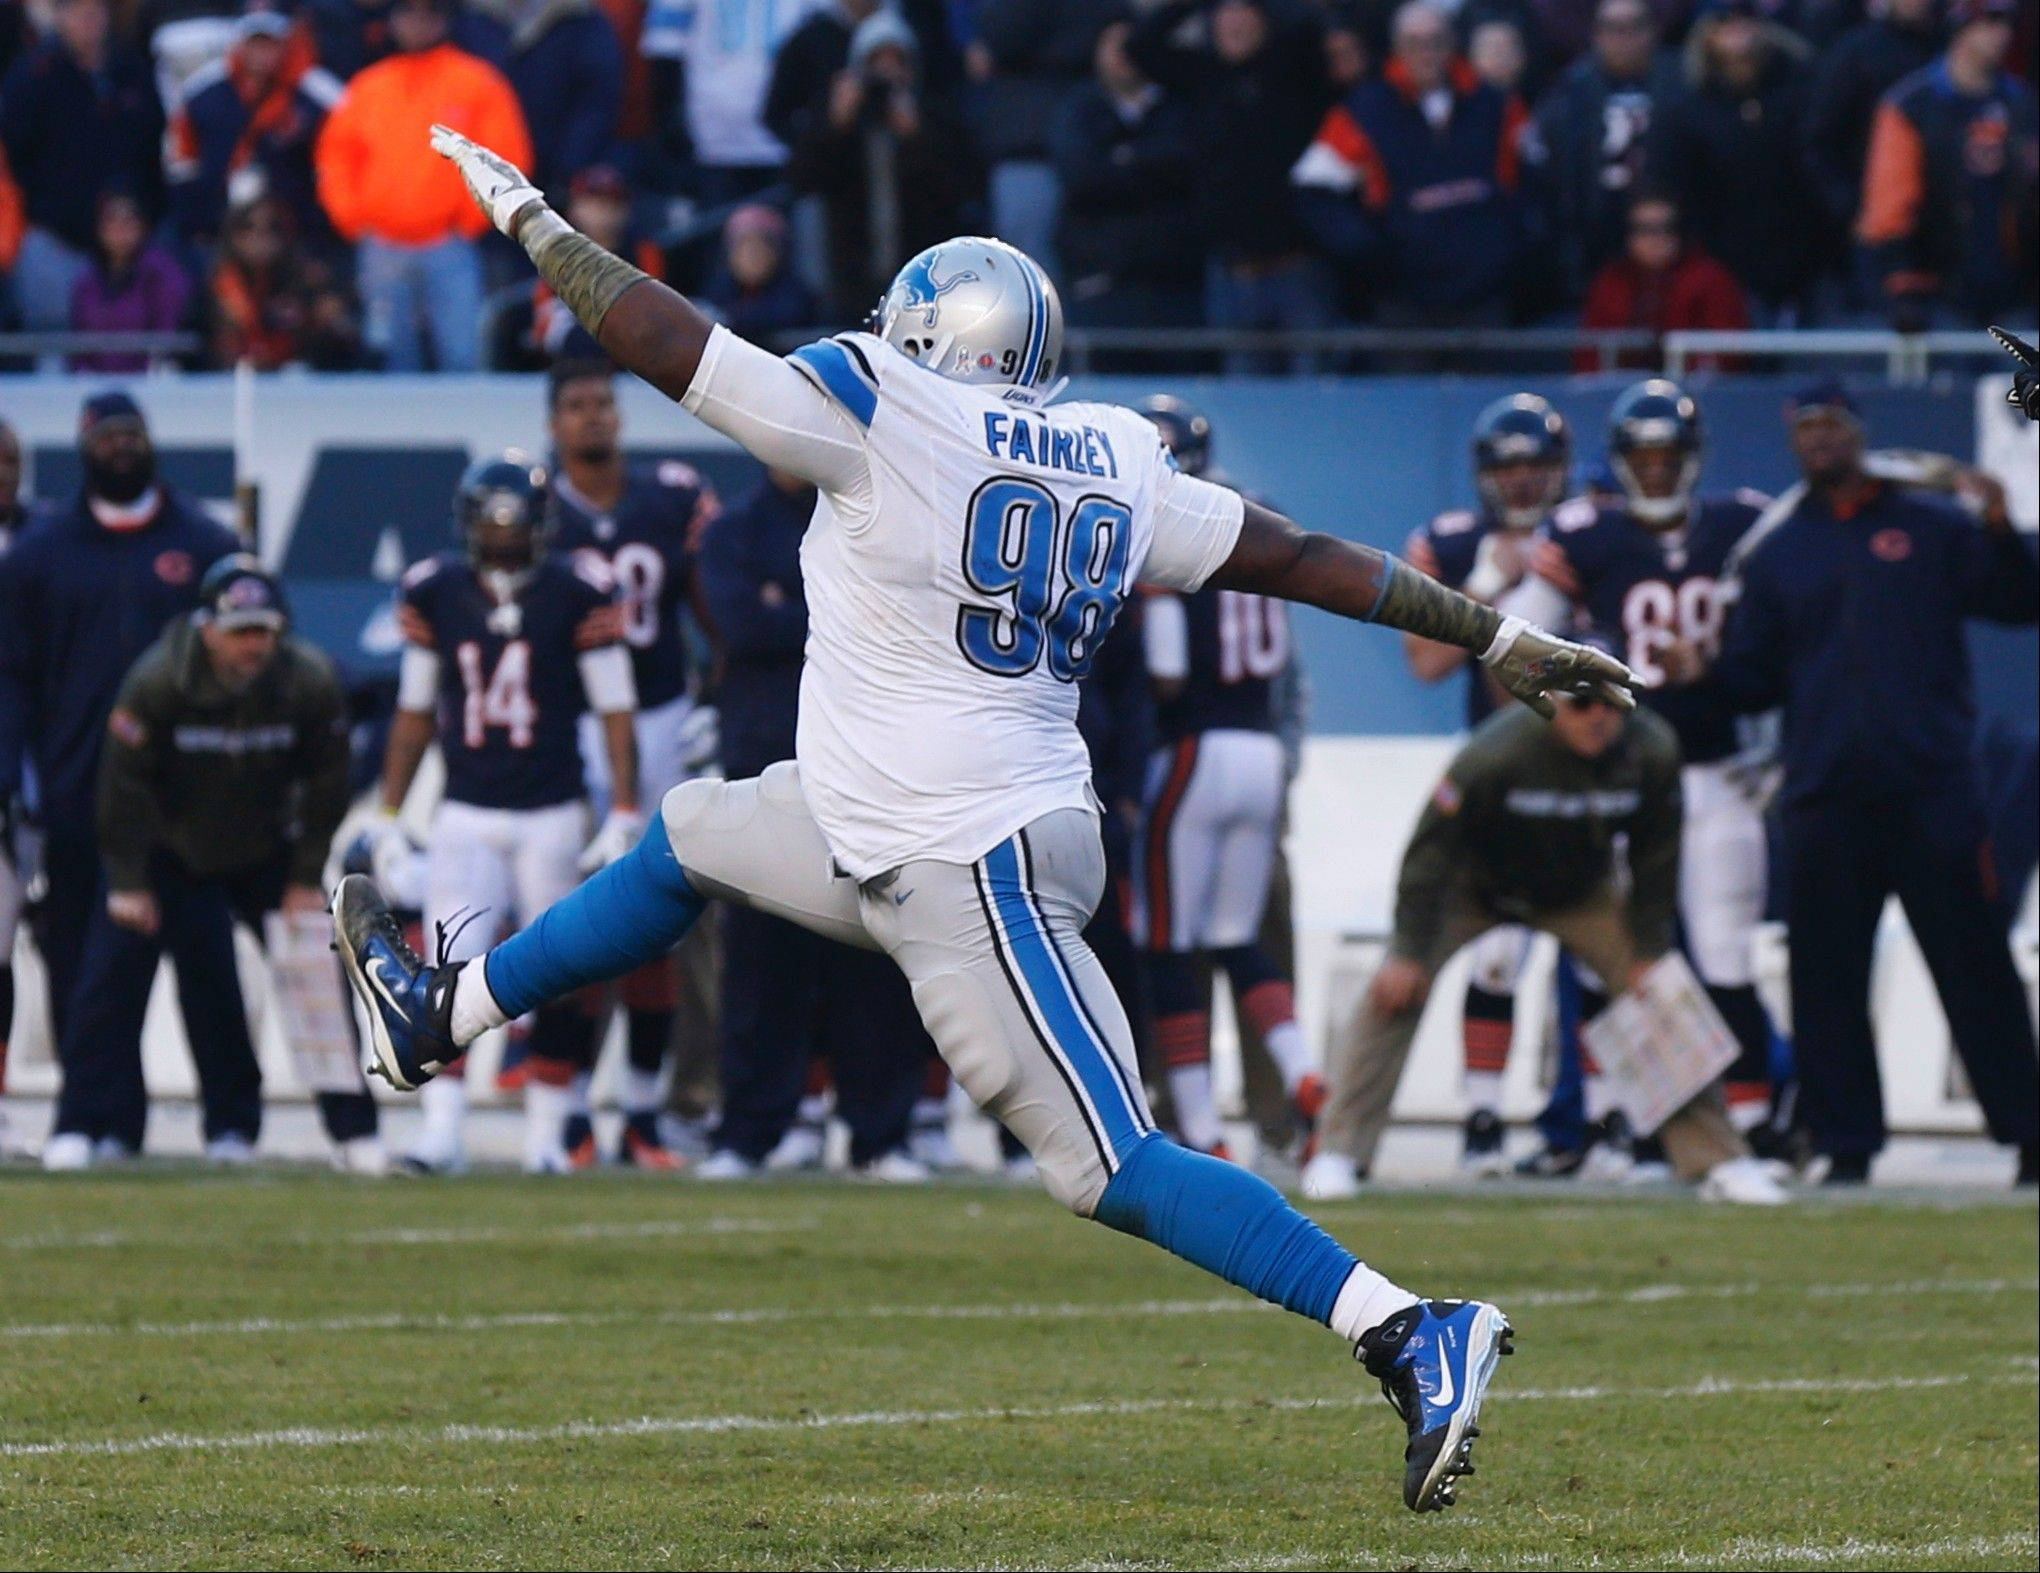 Lions defensive tackle Nick Fairley (98) celebrates after making a tackle against Chicago Bears during the second half of an NFL football game, Sunday, Nov. 10, 2013, in Chicago. The Lions won 21-19.